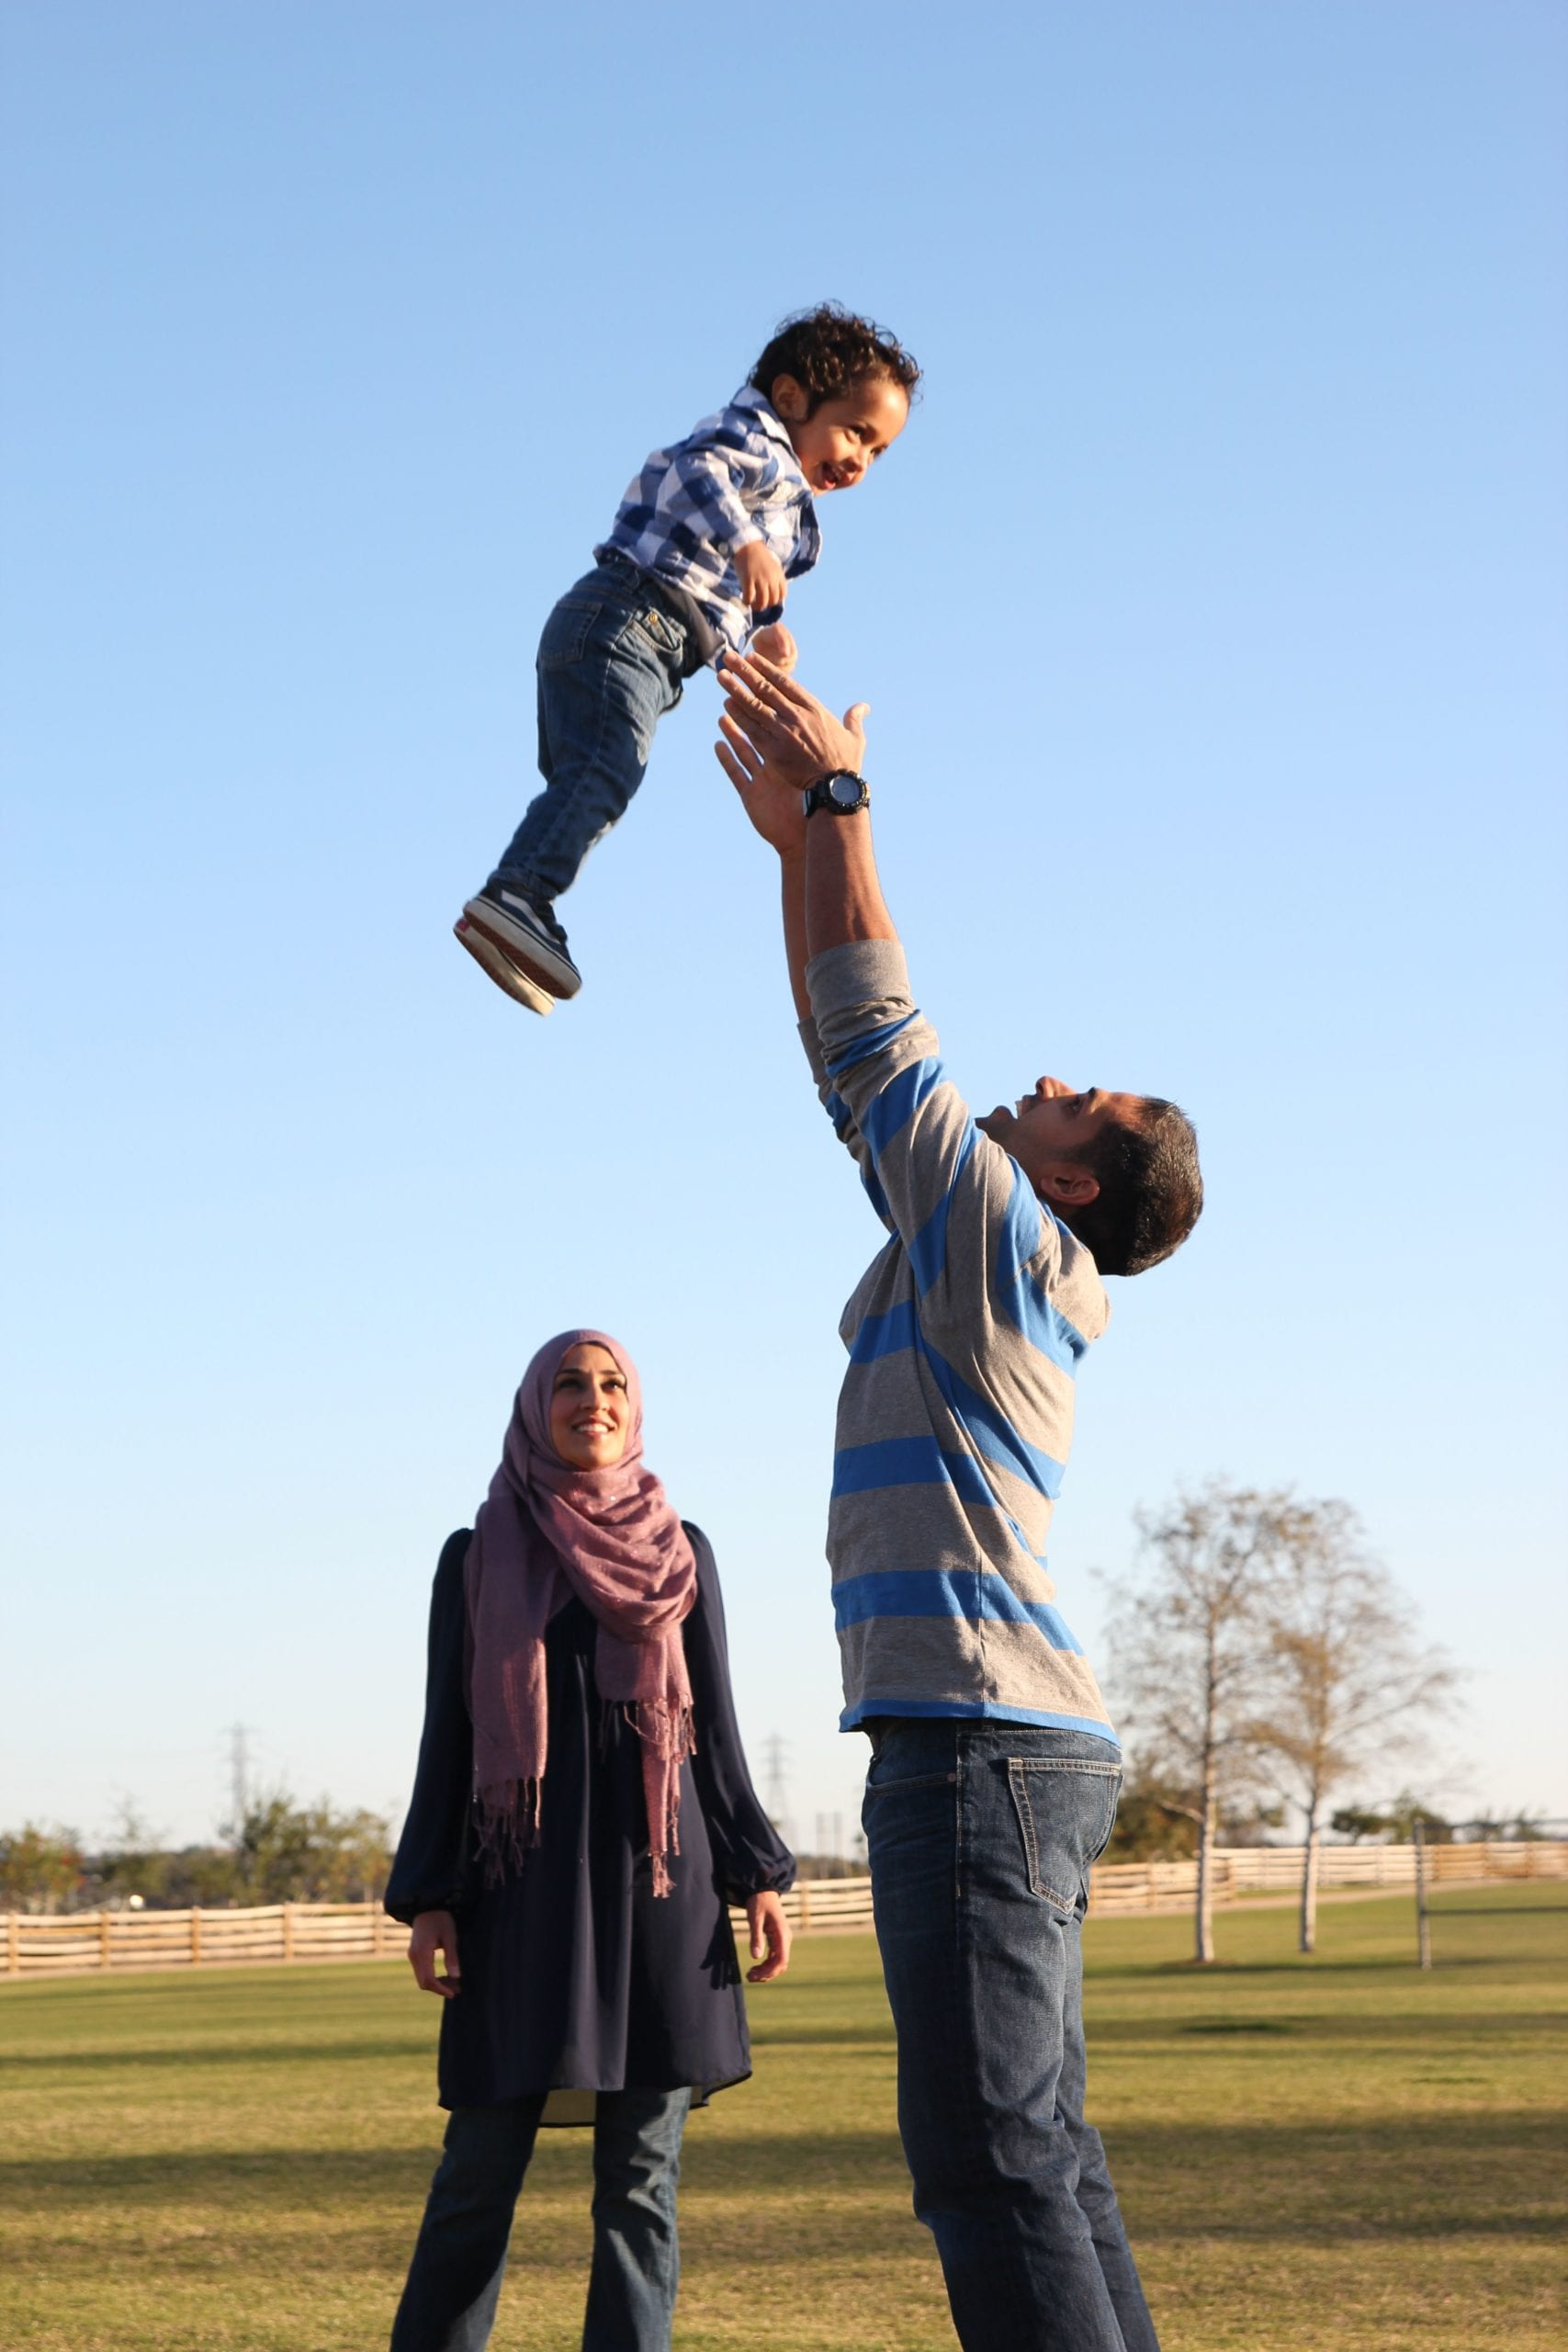 man throwing his child in the air